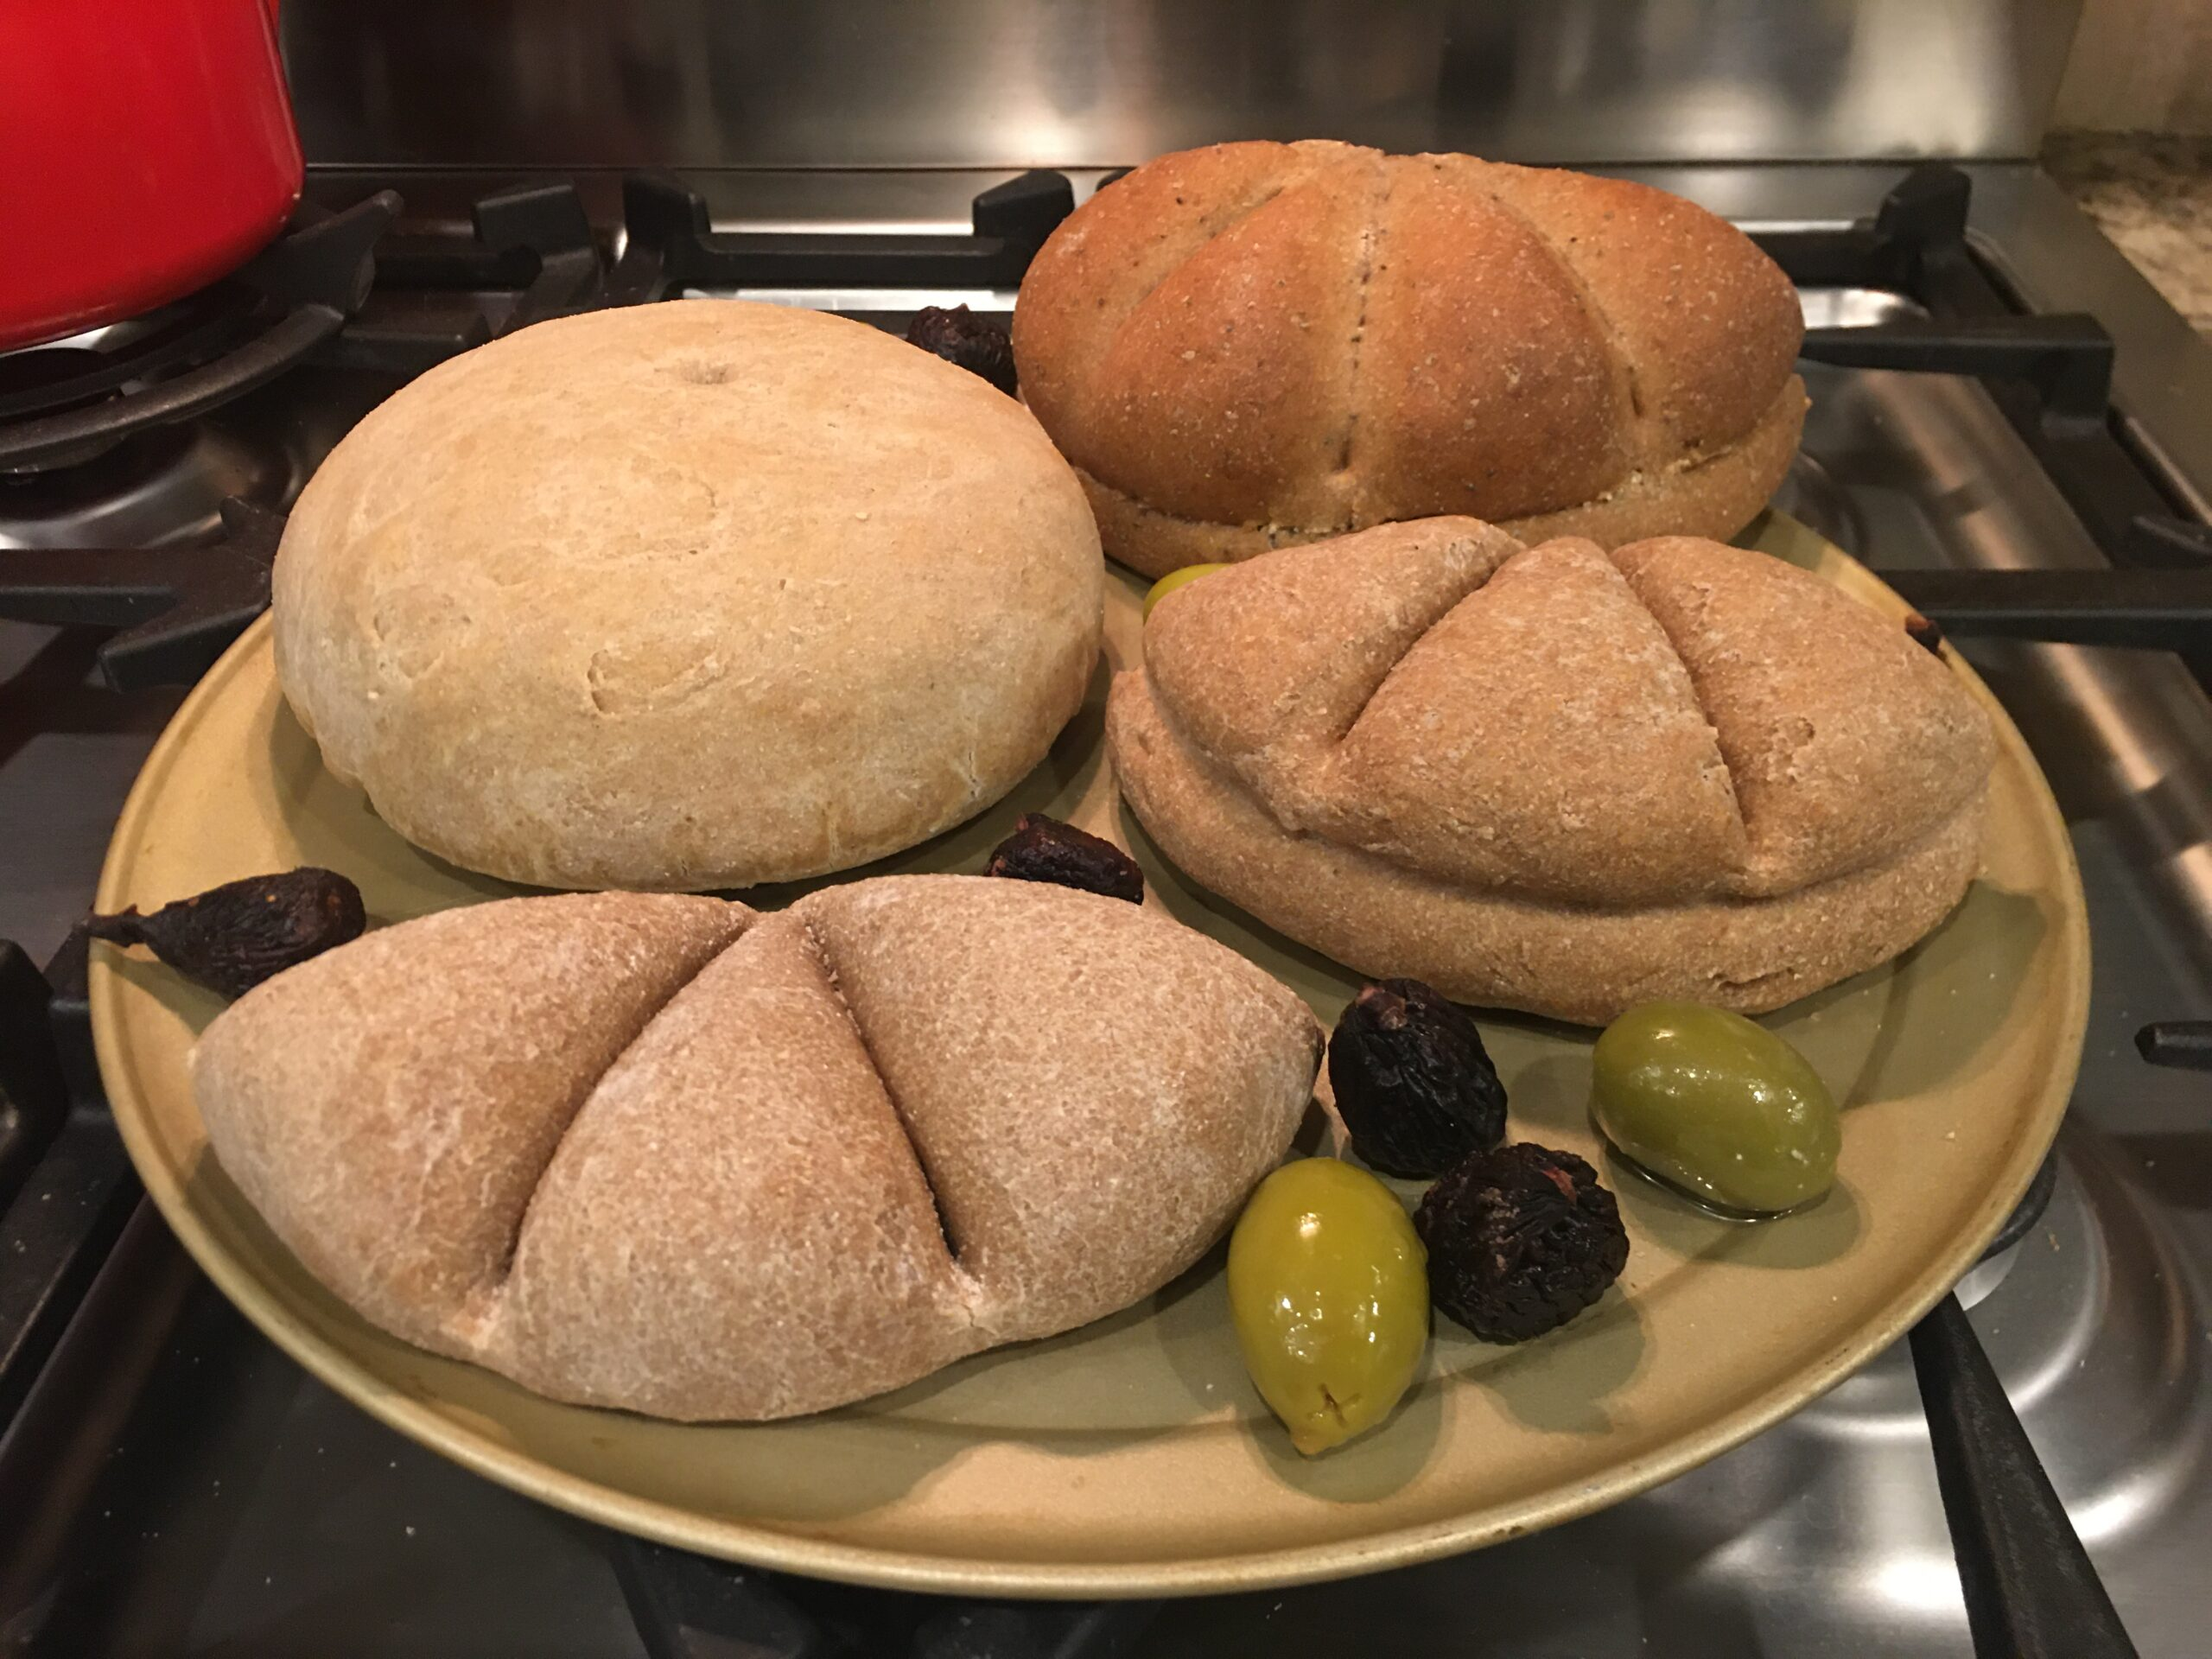 4 loaves of bread and some olives